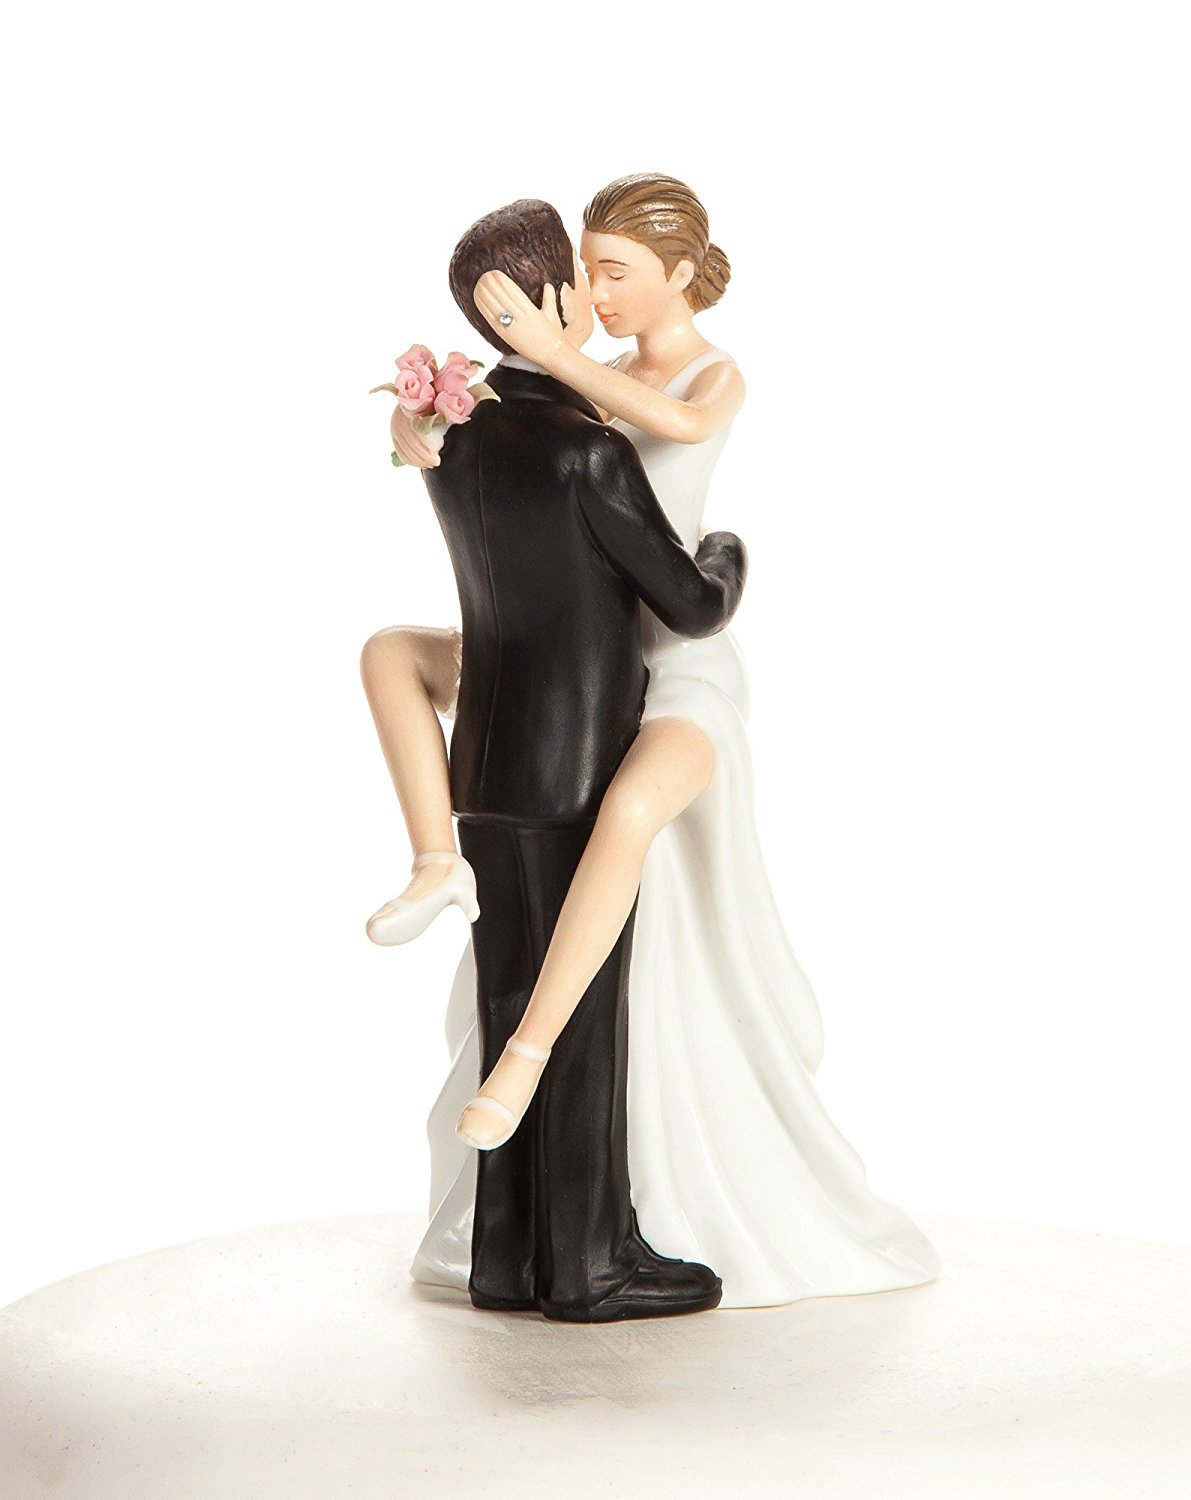 Wedding Collectibles Personalized Funny Sexy Wedding Bride and Groom Cake Topper Figurine: Bride Hair: BROWN - Groom Hair: BROWN